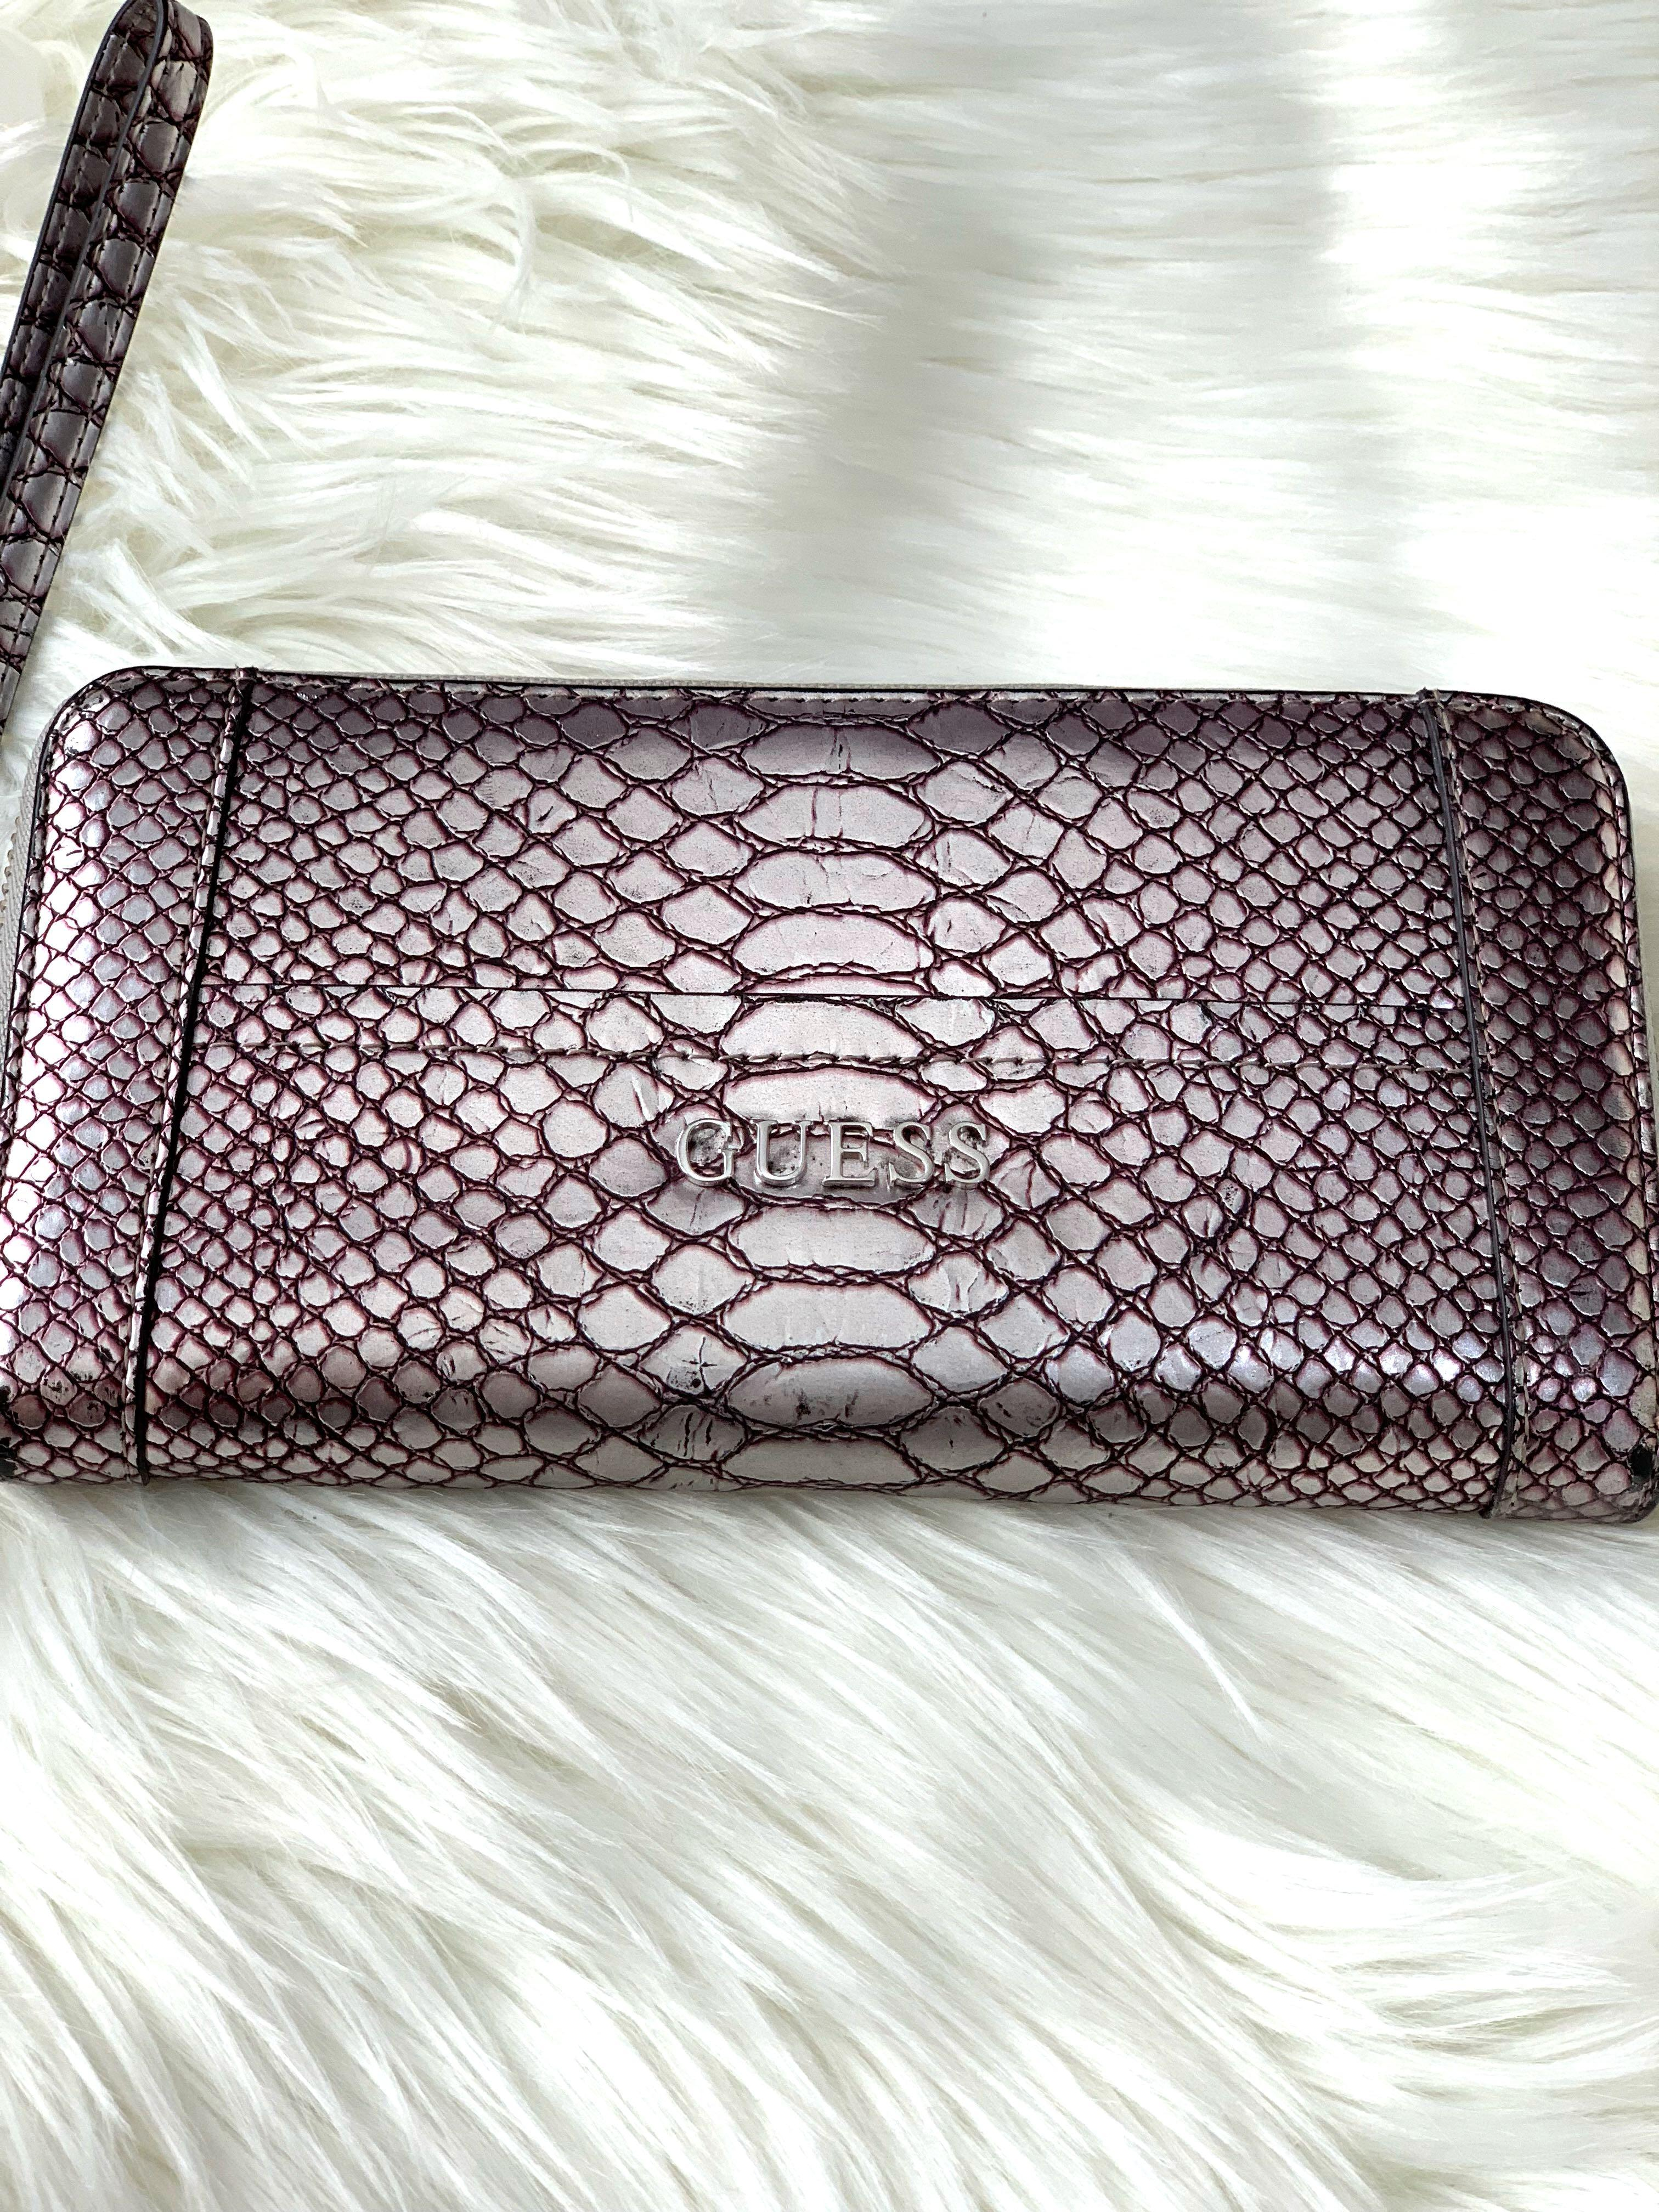 Authentic GUESS Wallet Purse Faux Alligator Croc Style Purple Taupe Silver